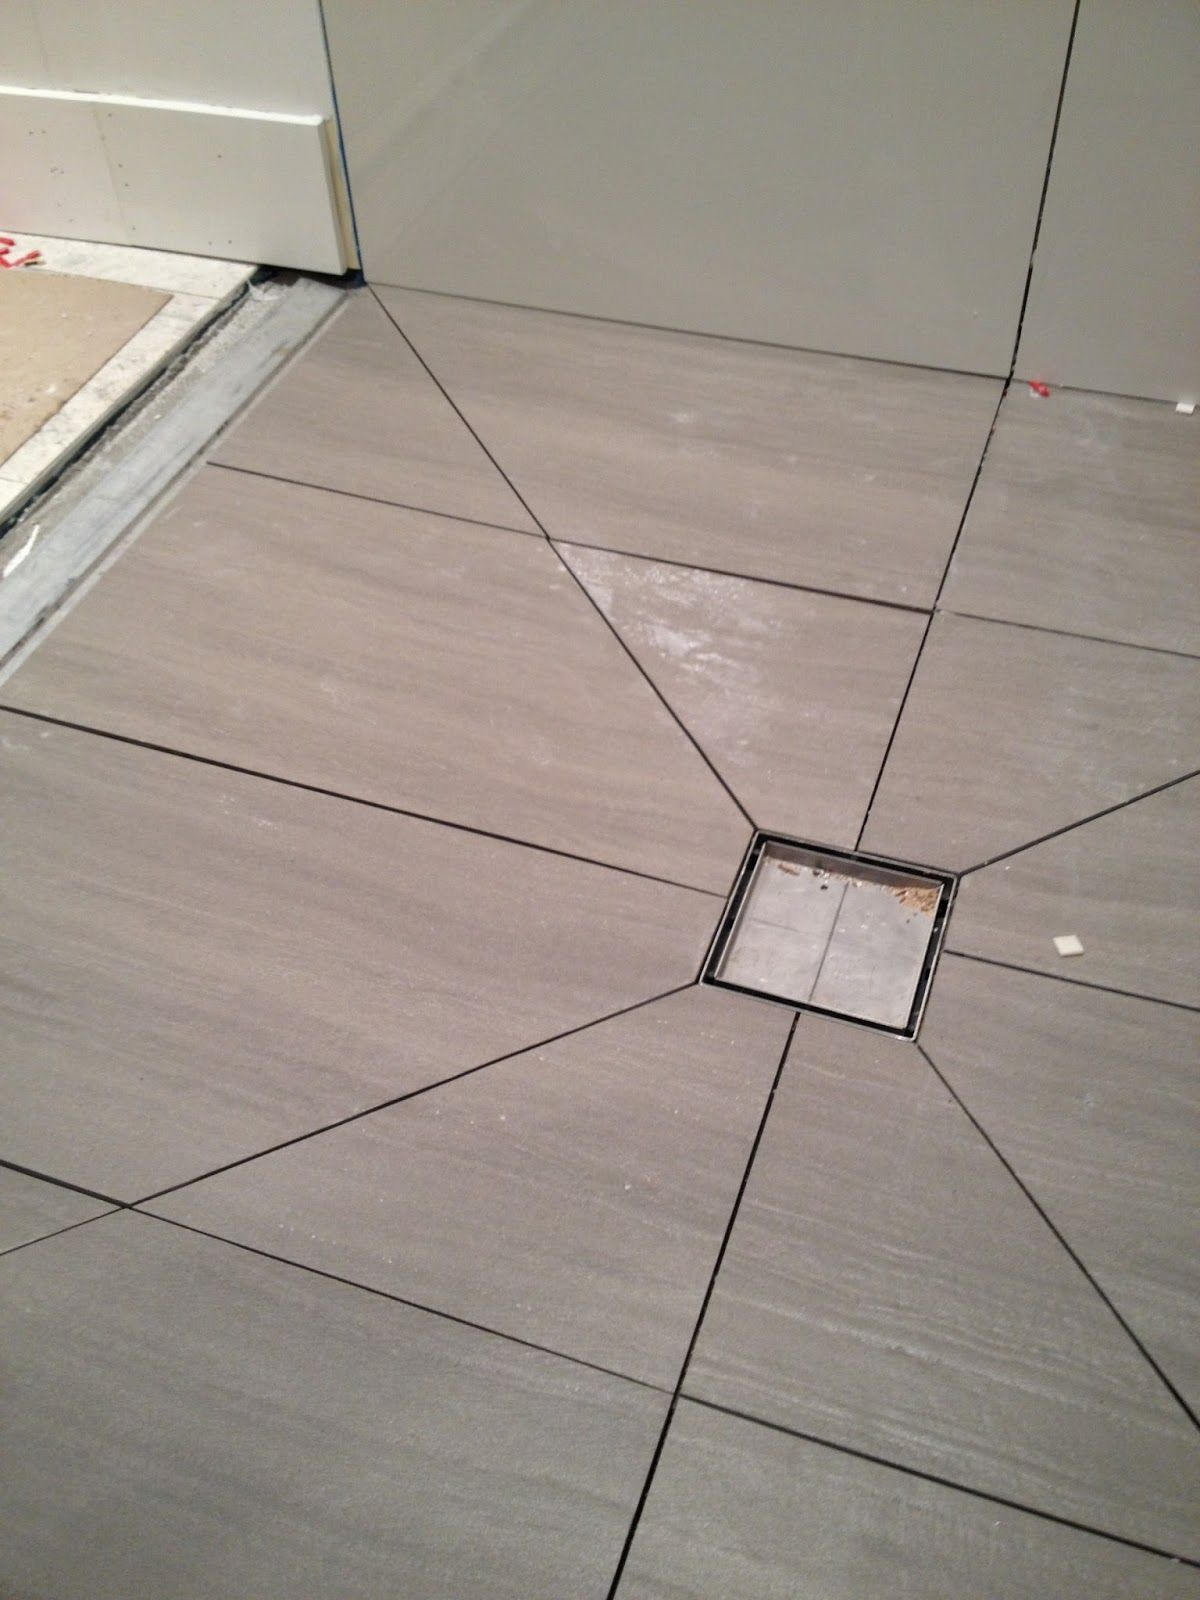 Diagonal Tile Cuts To Slope Shower Floor Burkolsok Ekkor 2018